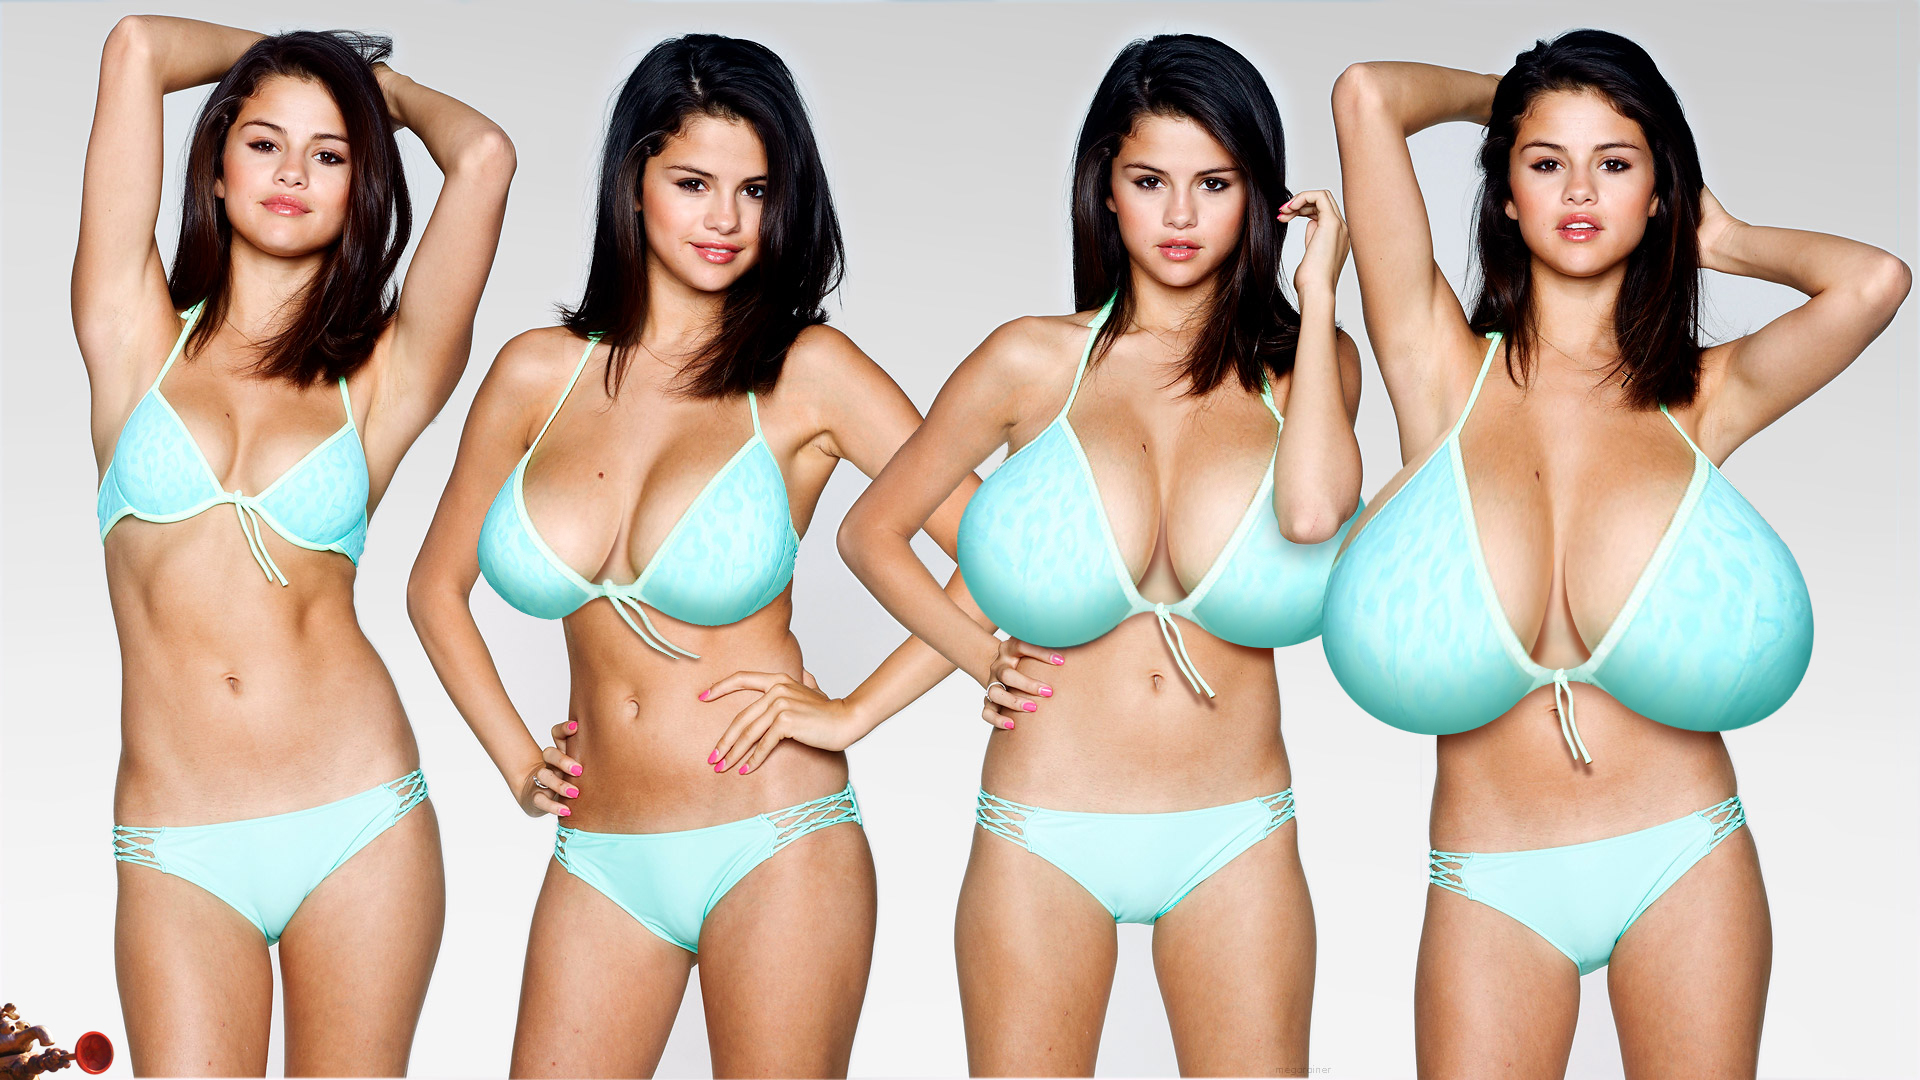 selena-gomez-spring-breakers-wallpaper-gz